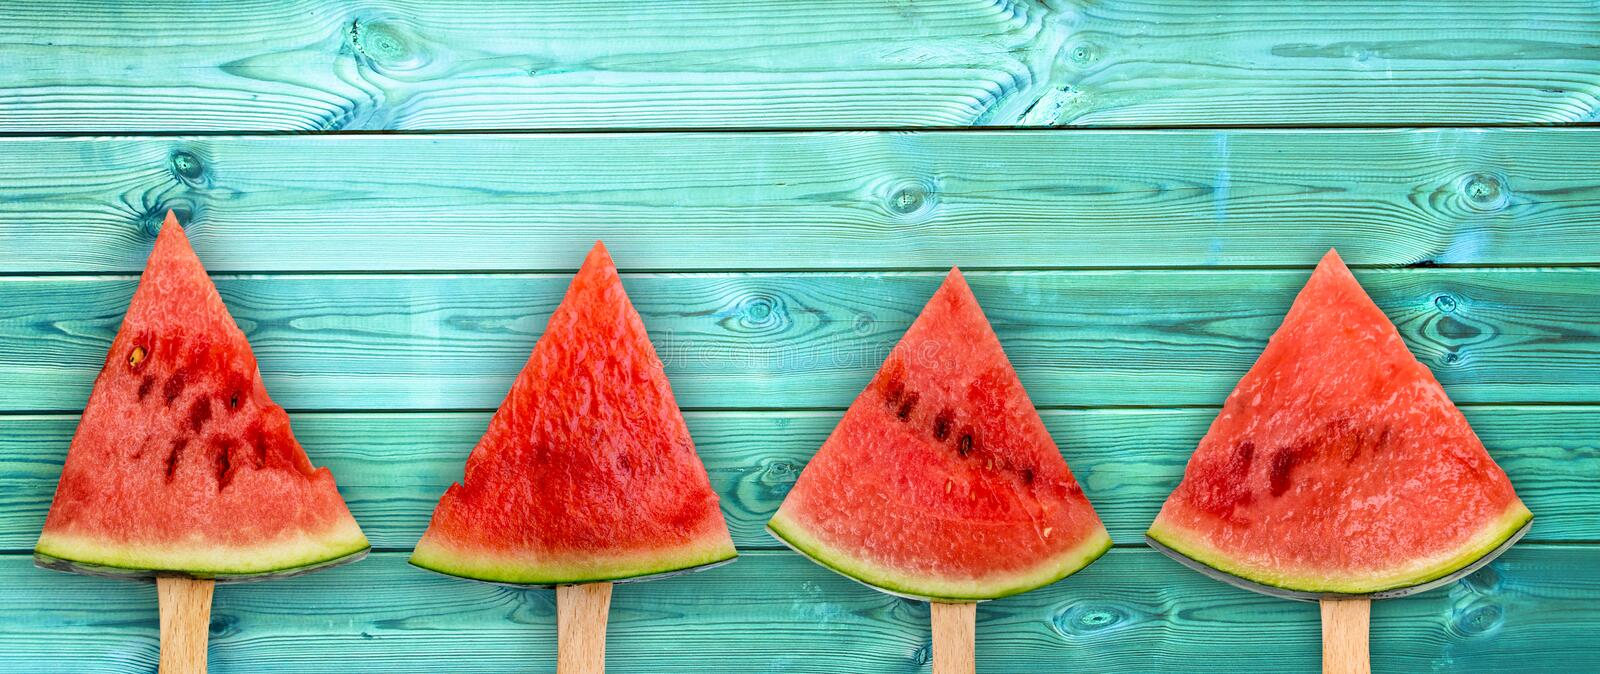 Four watermelon slice popsicles on panoramic blue wood background, fresh fruit concept royalty free stock images